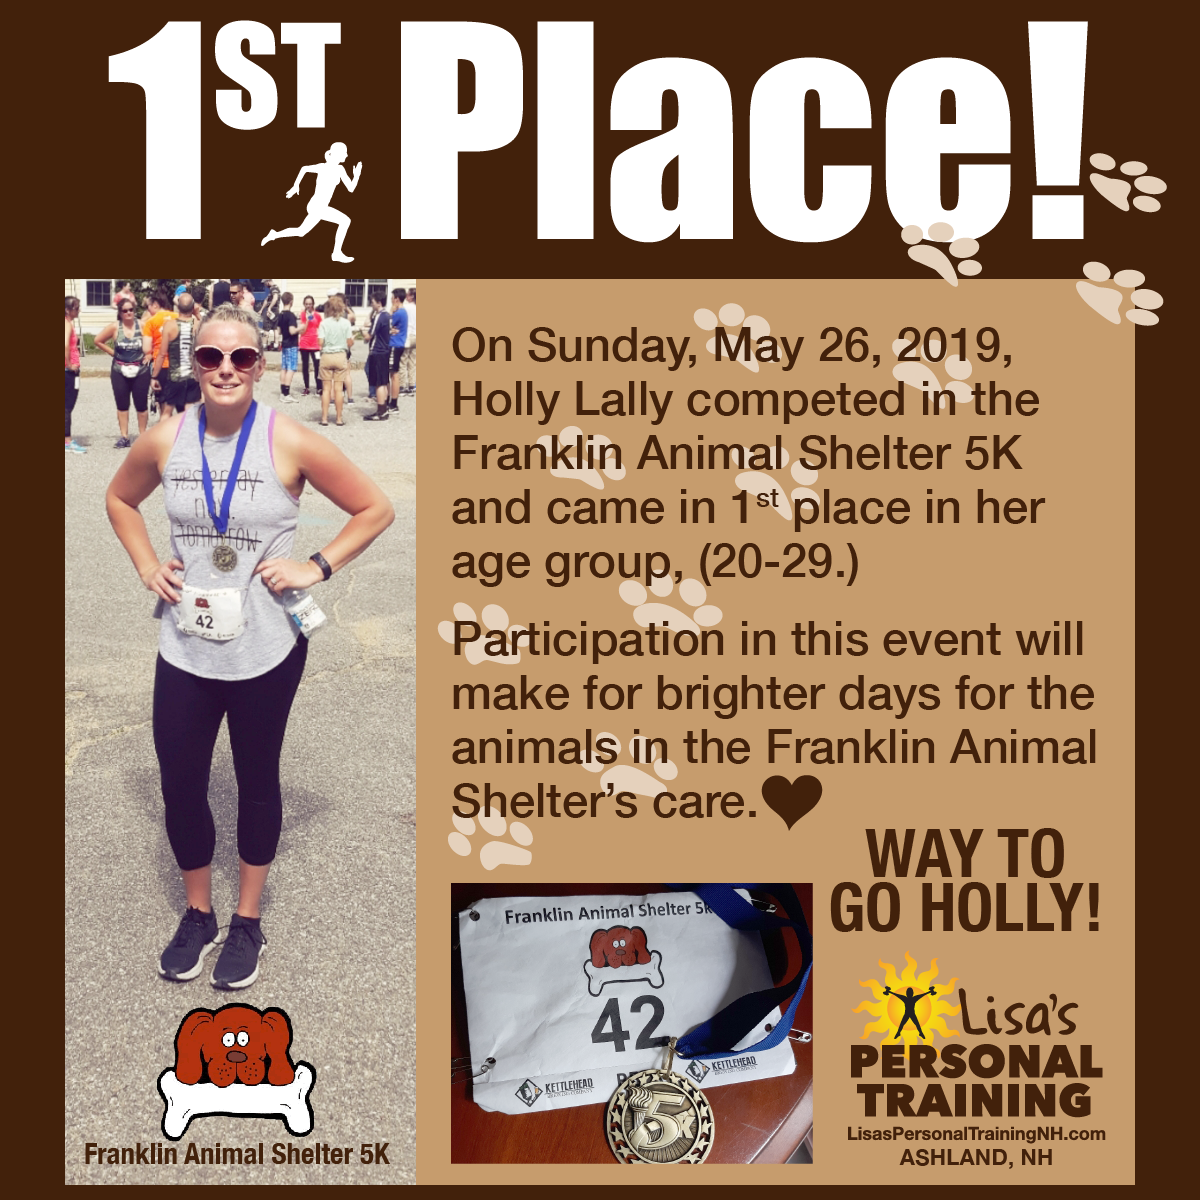 Holly Lally takes 1st place in her age group at the Franklin Animal Shelter 5K, May 26, 2019